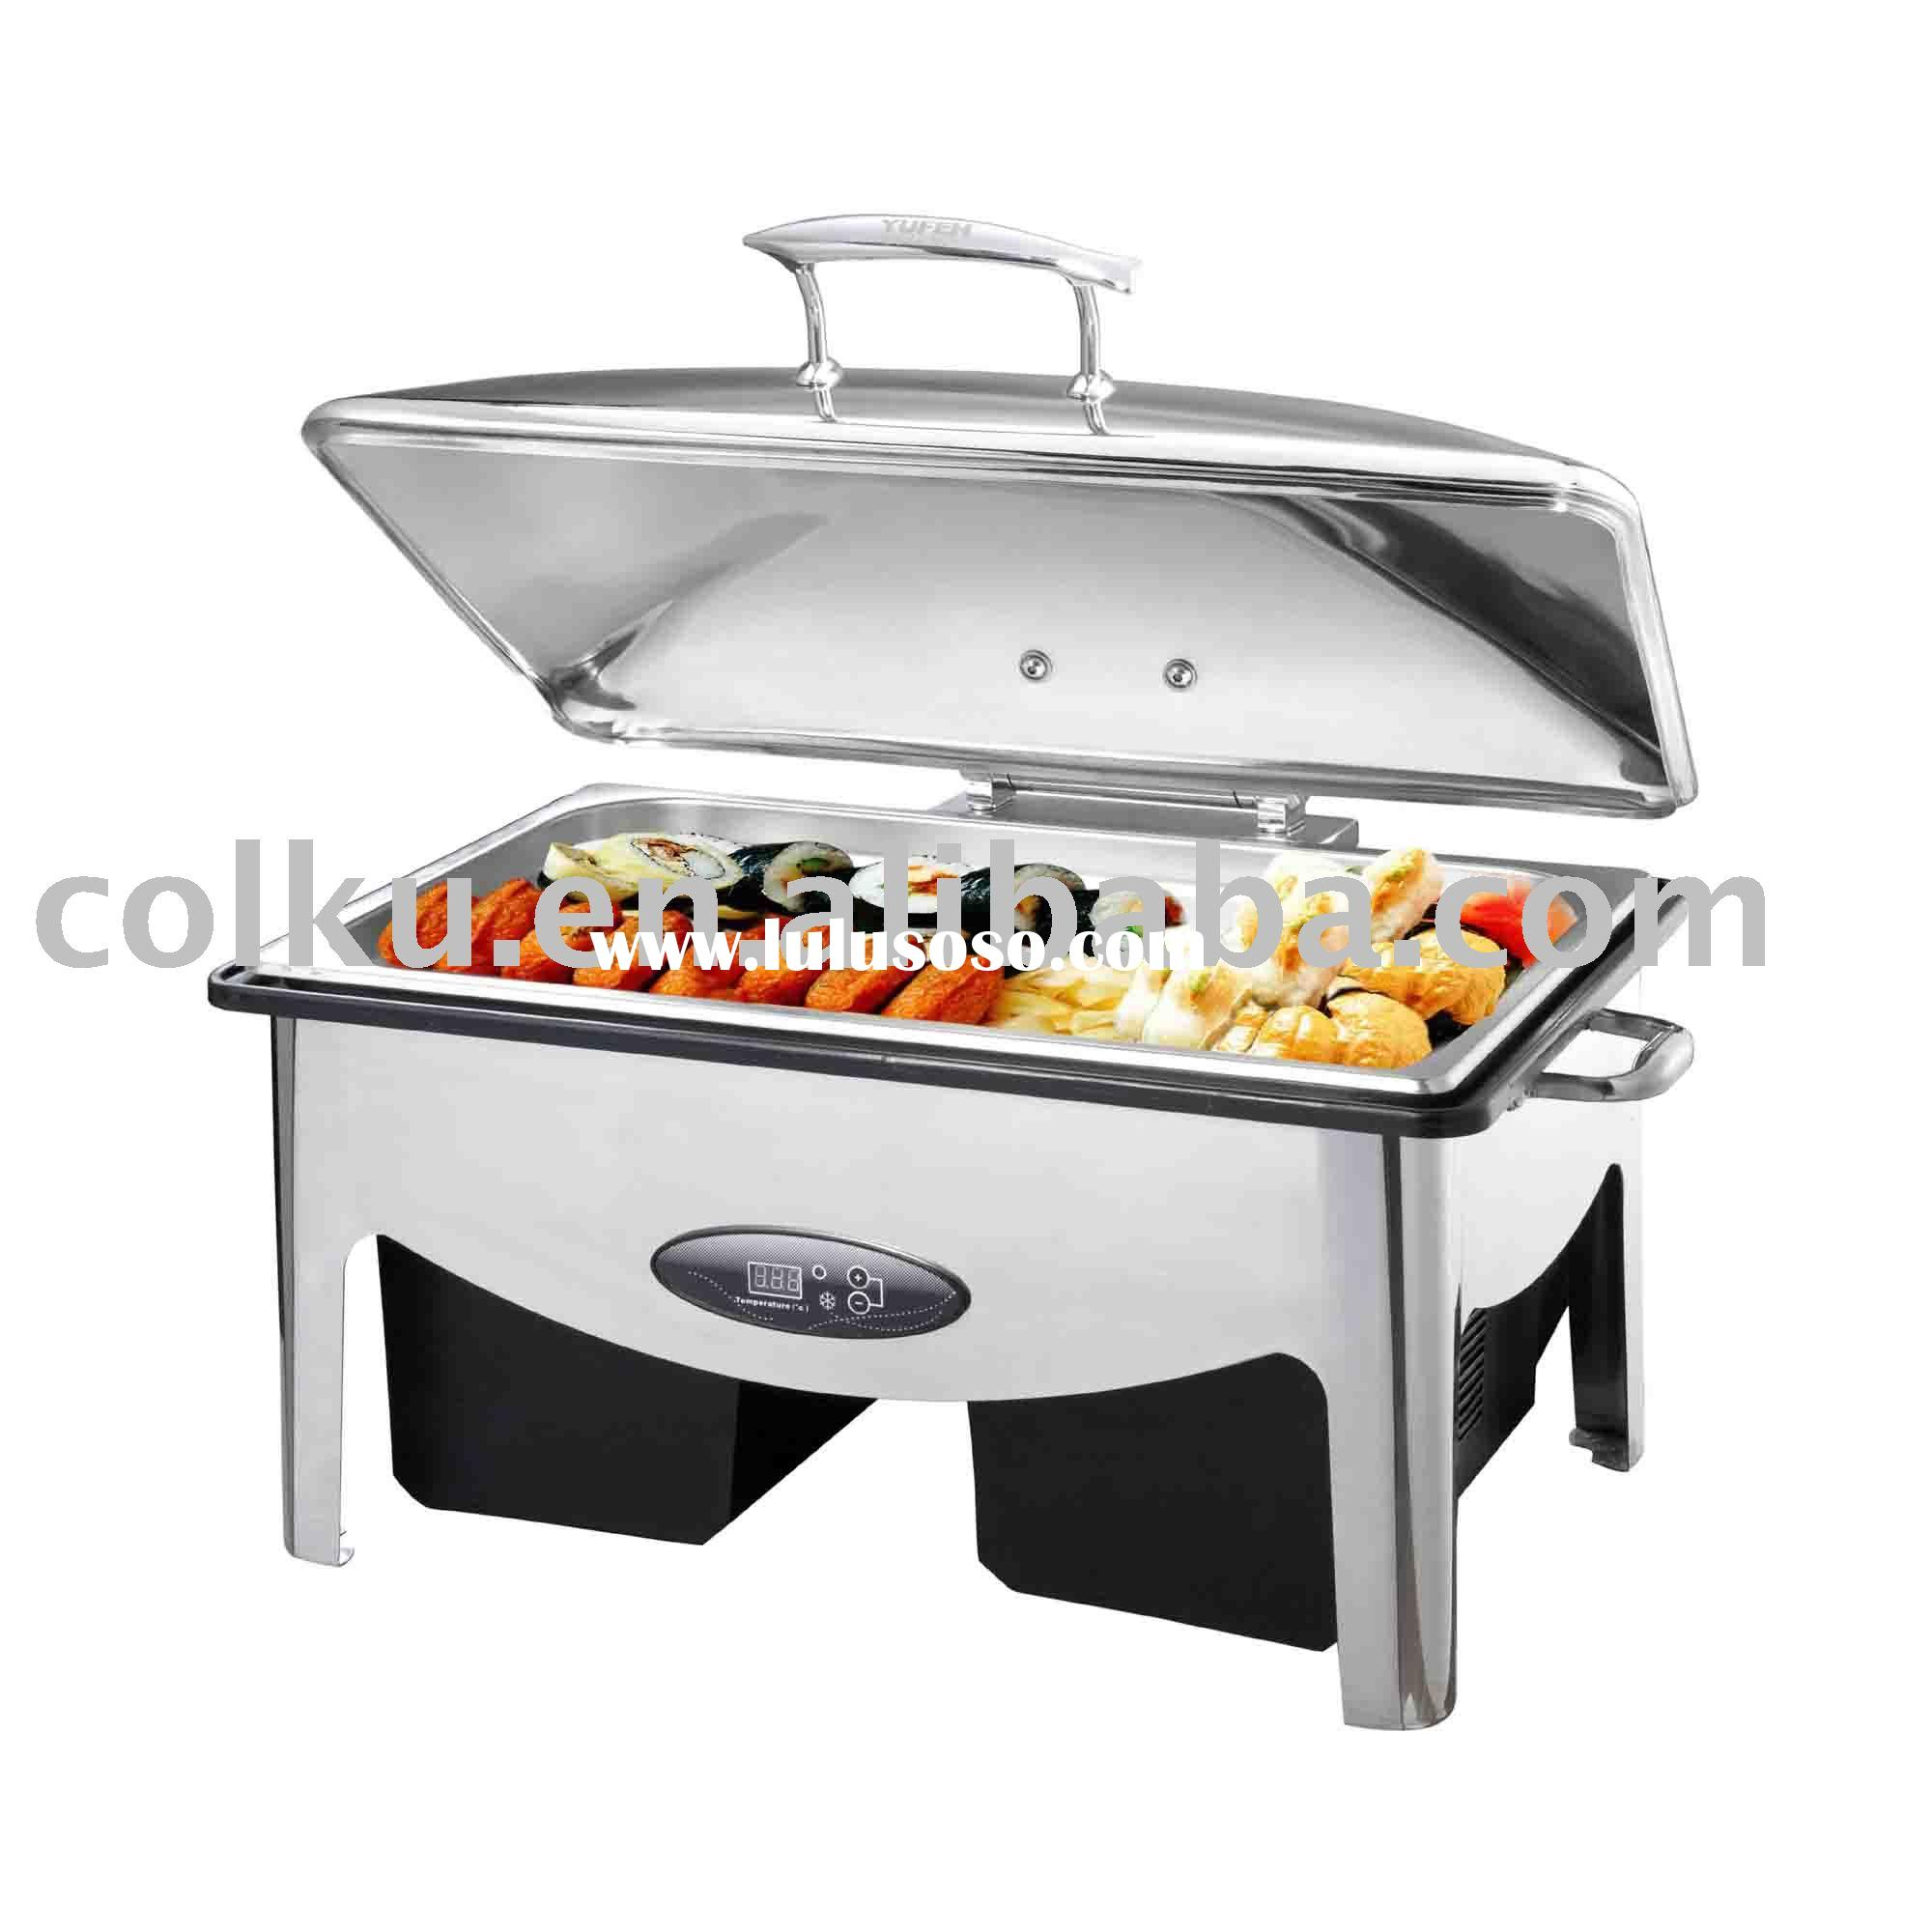 cold & hot serving tray